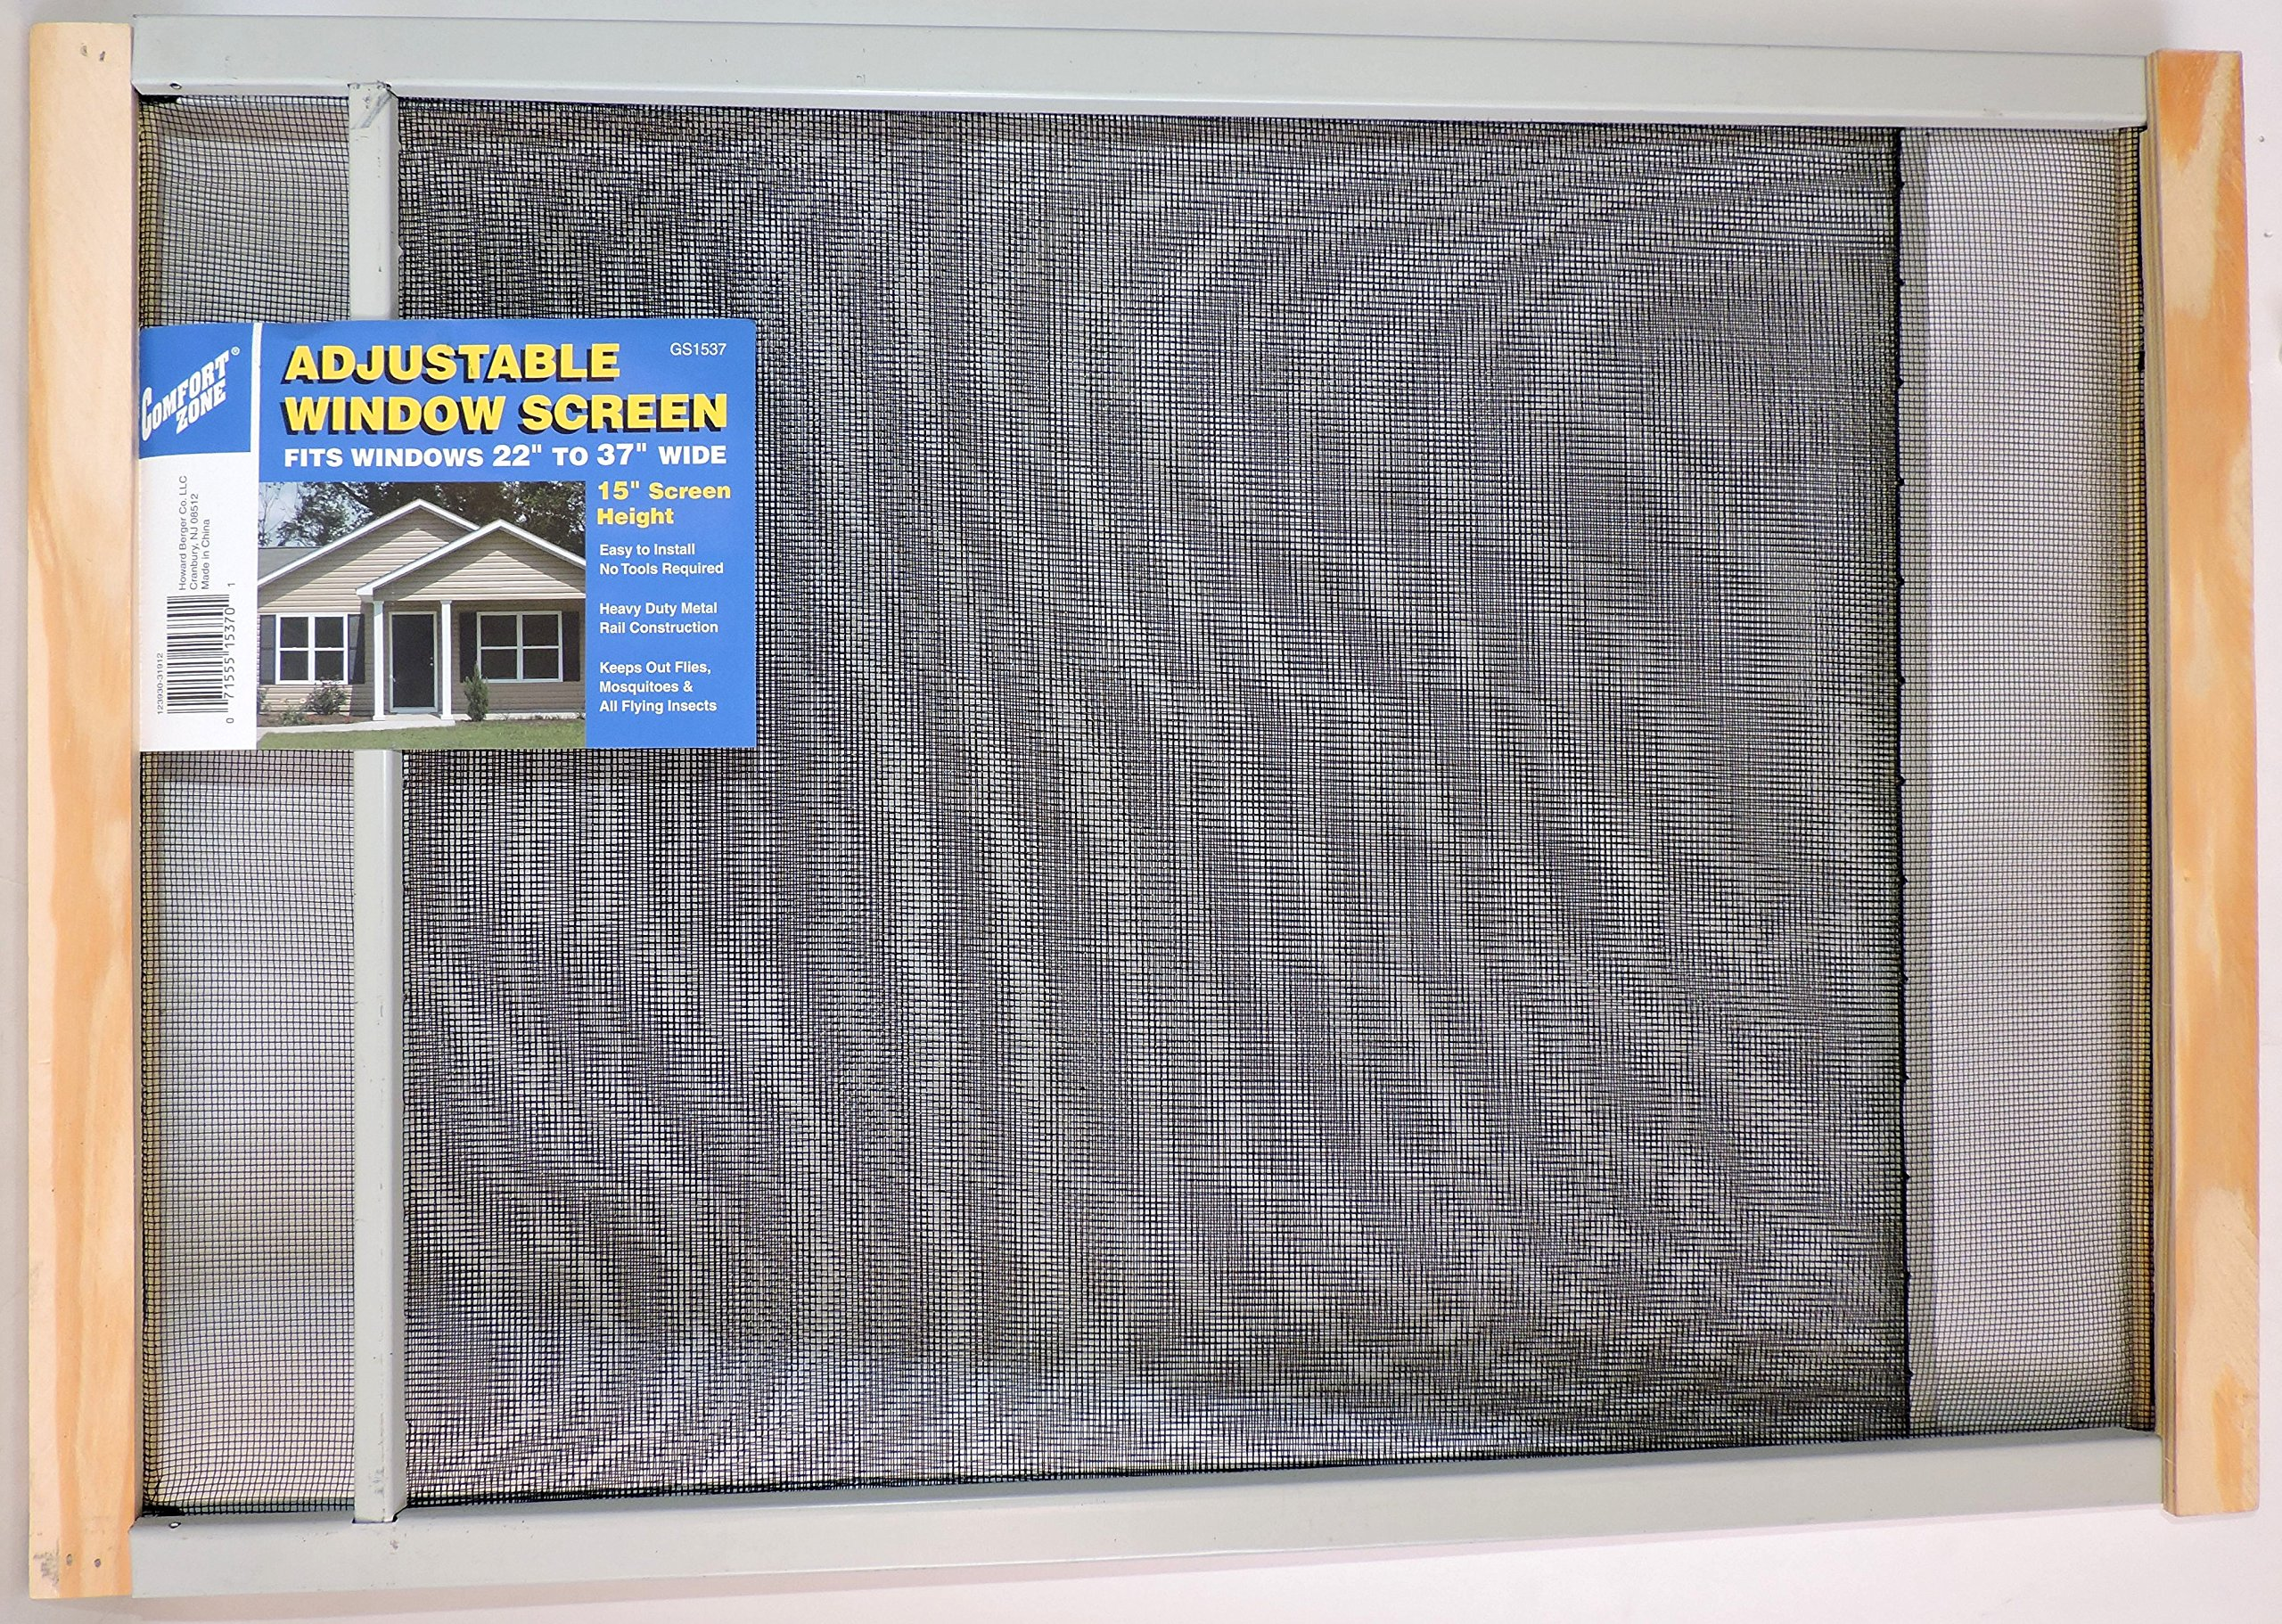 15'' High Adjustable Window Screen 22'' to 37'' Wide